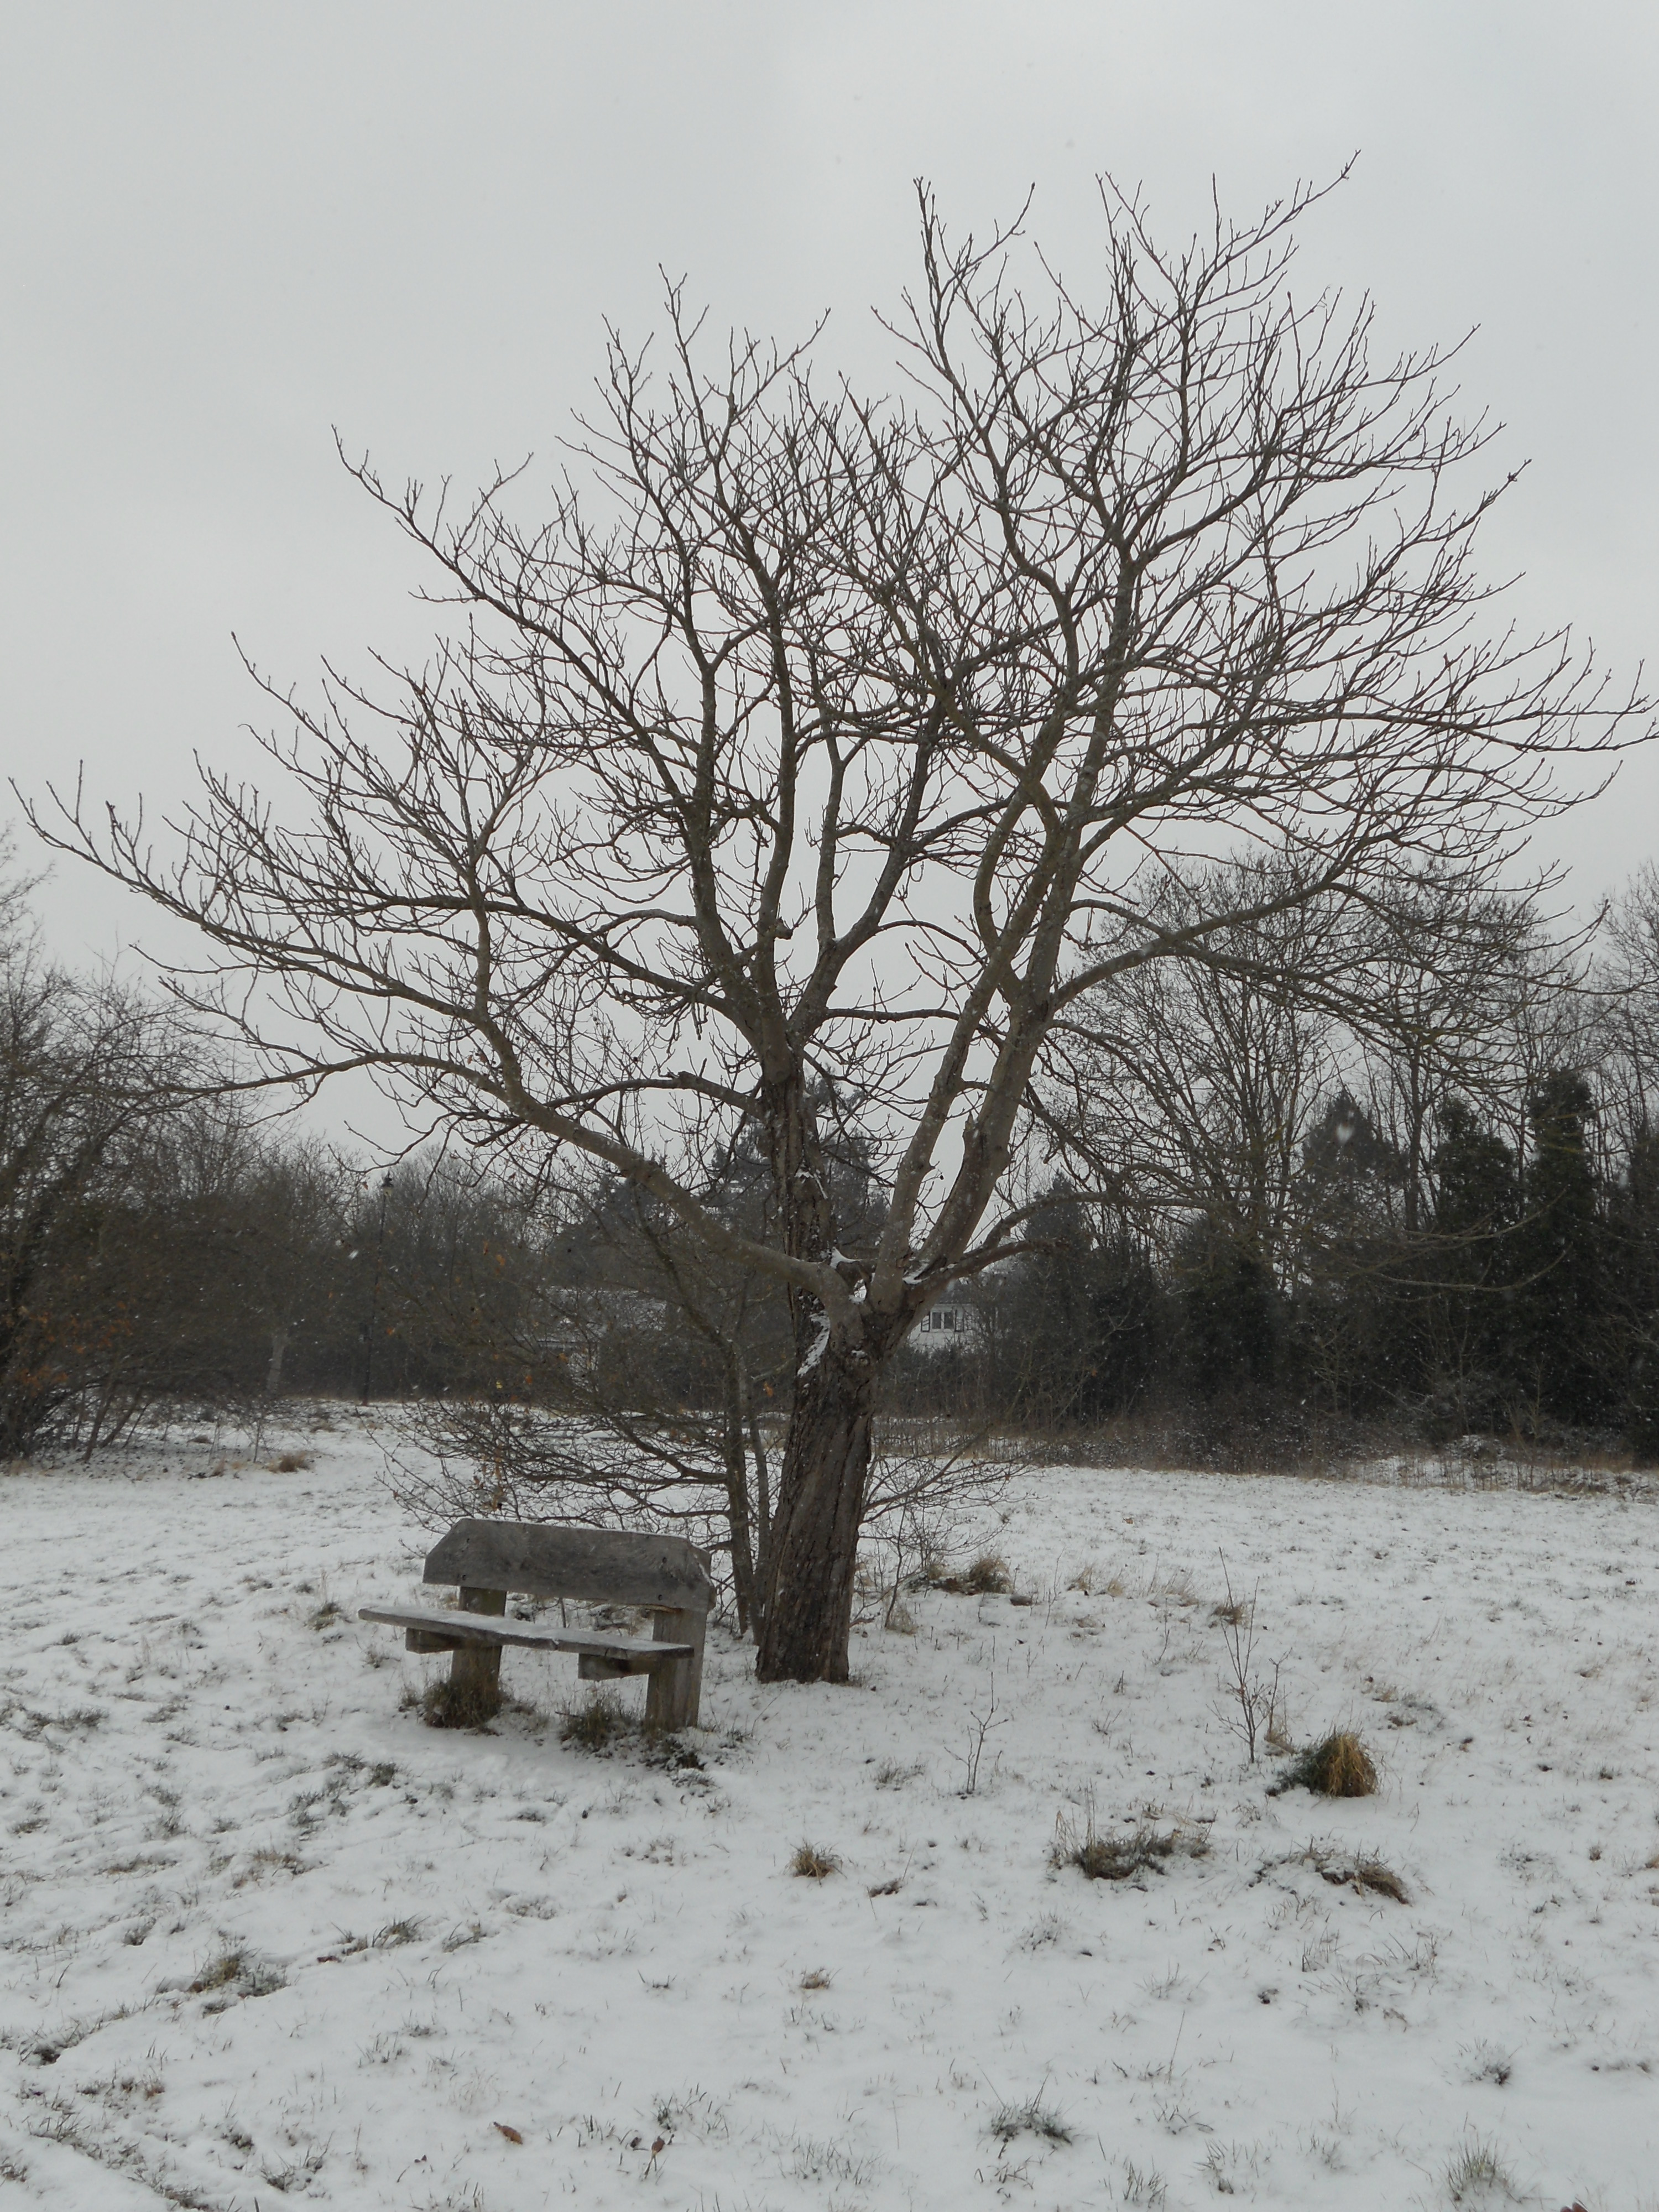 Cold and lonely seat